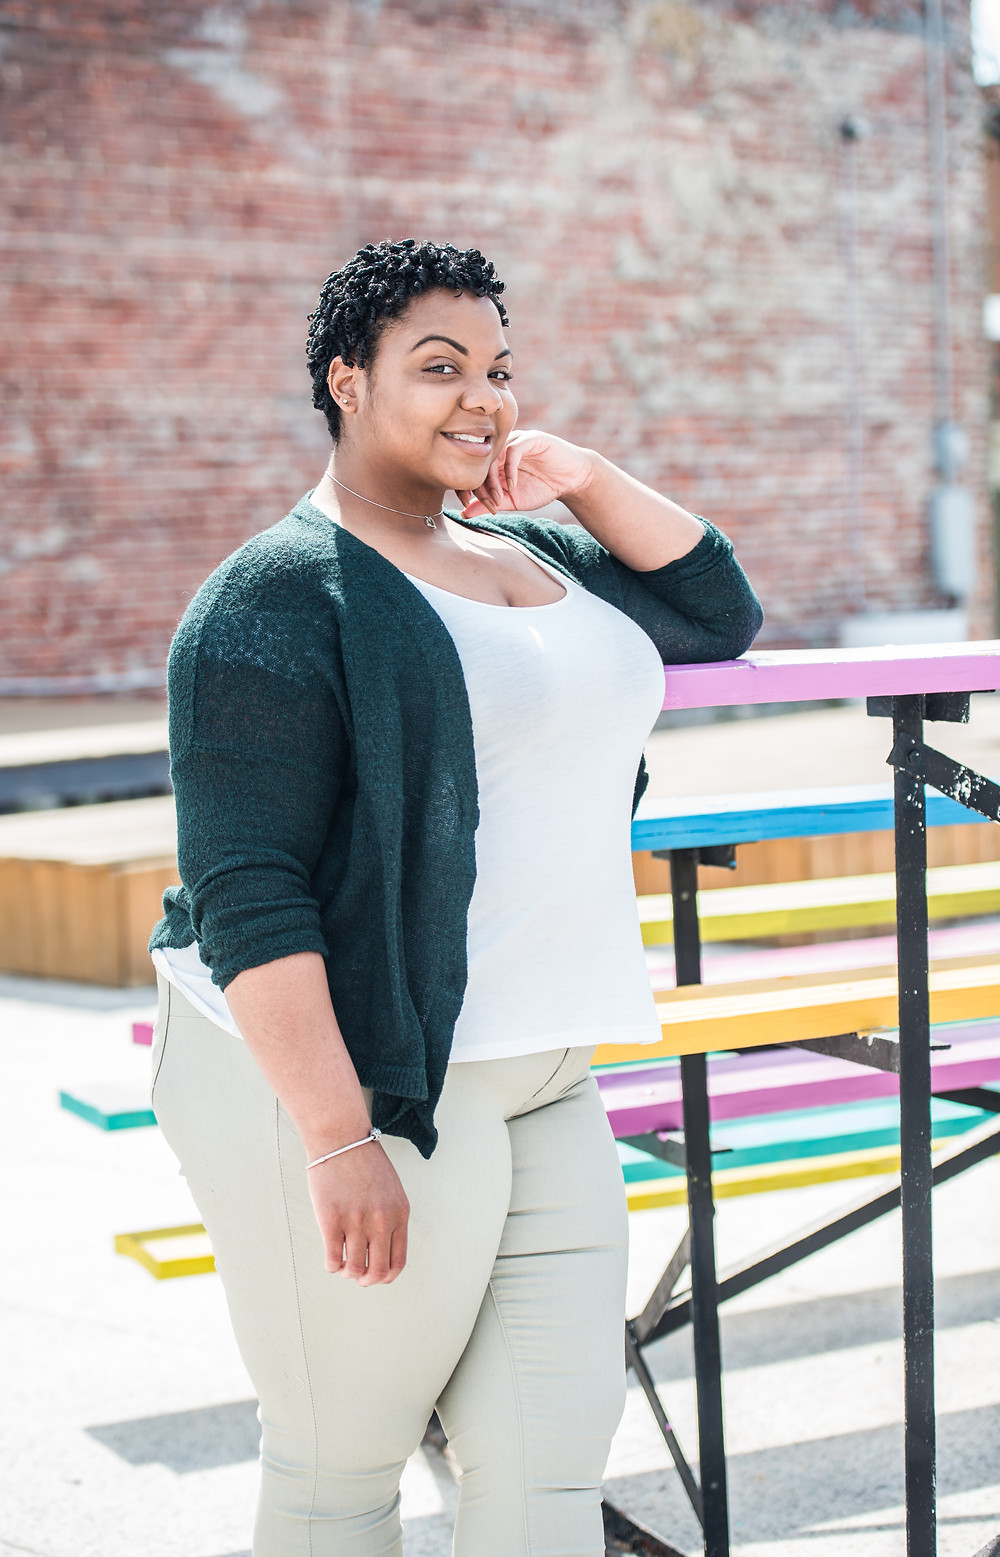 Downtown Norfolk Neon District Women's Empowerment Headshot Photography Session